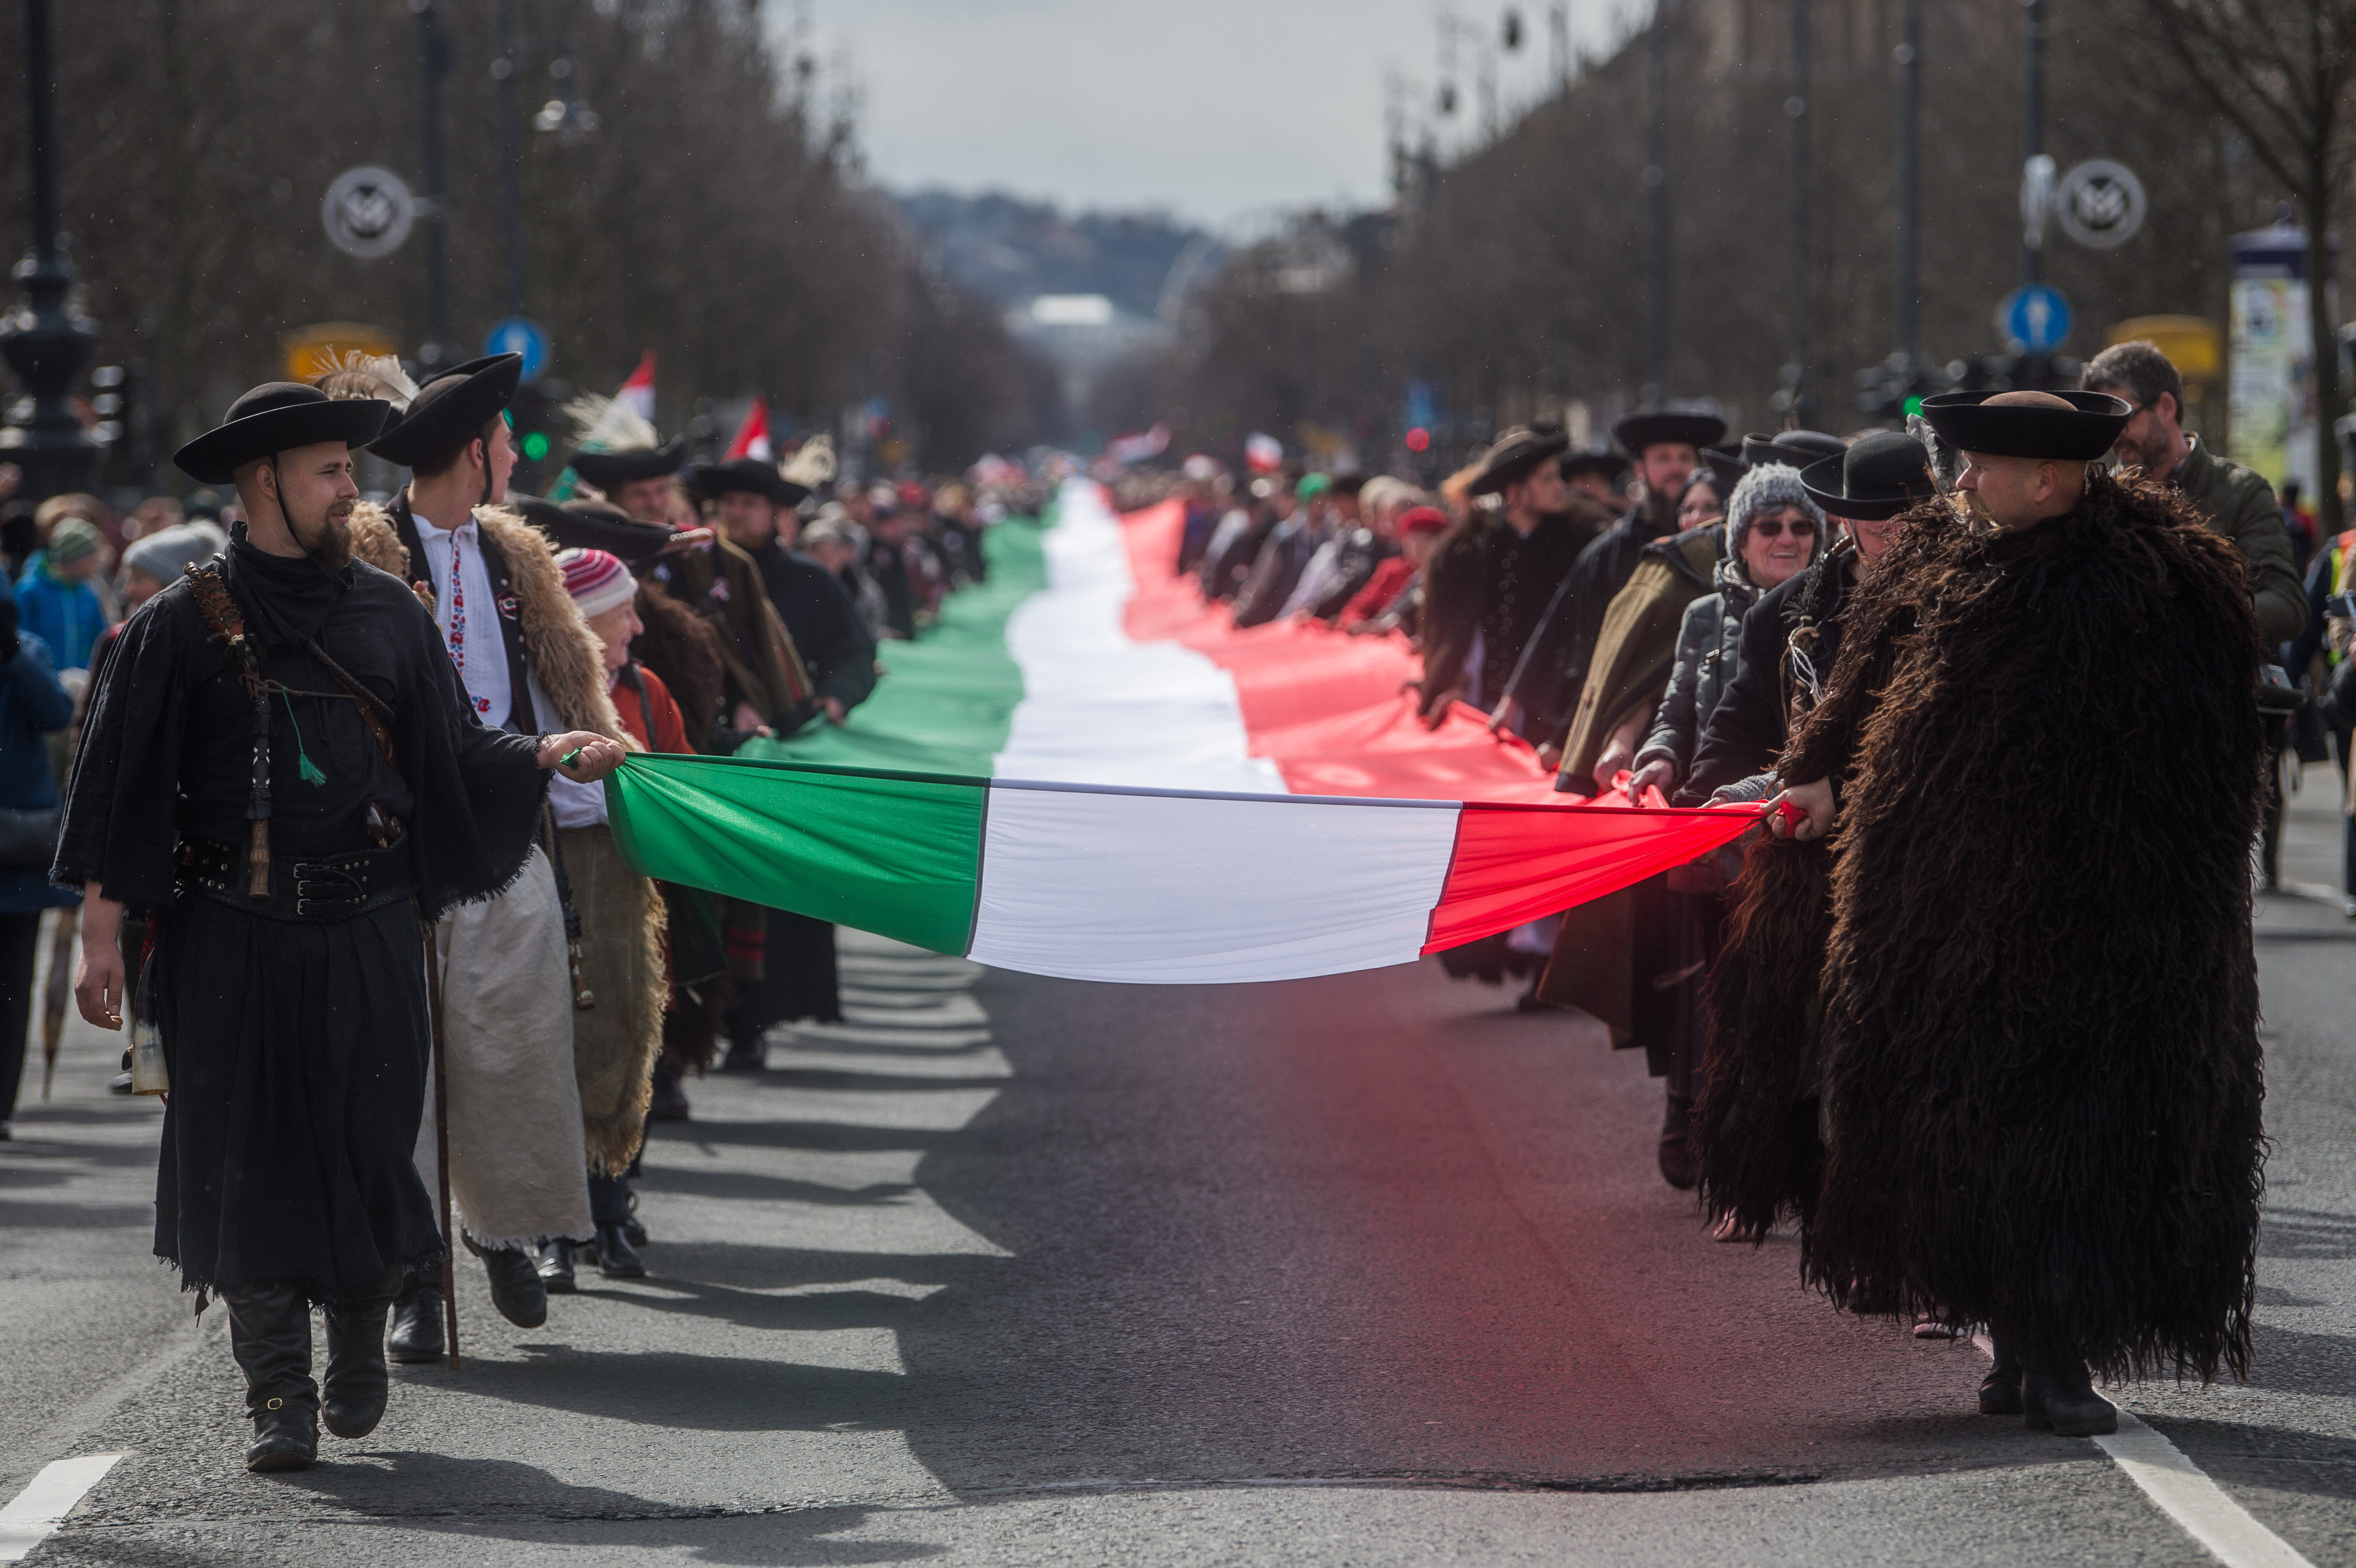 1848 Hungarian volunteers marched with 1,848-meter long Hungarian national flag in Budapest